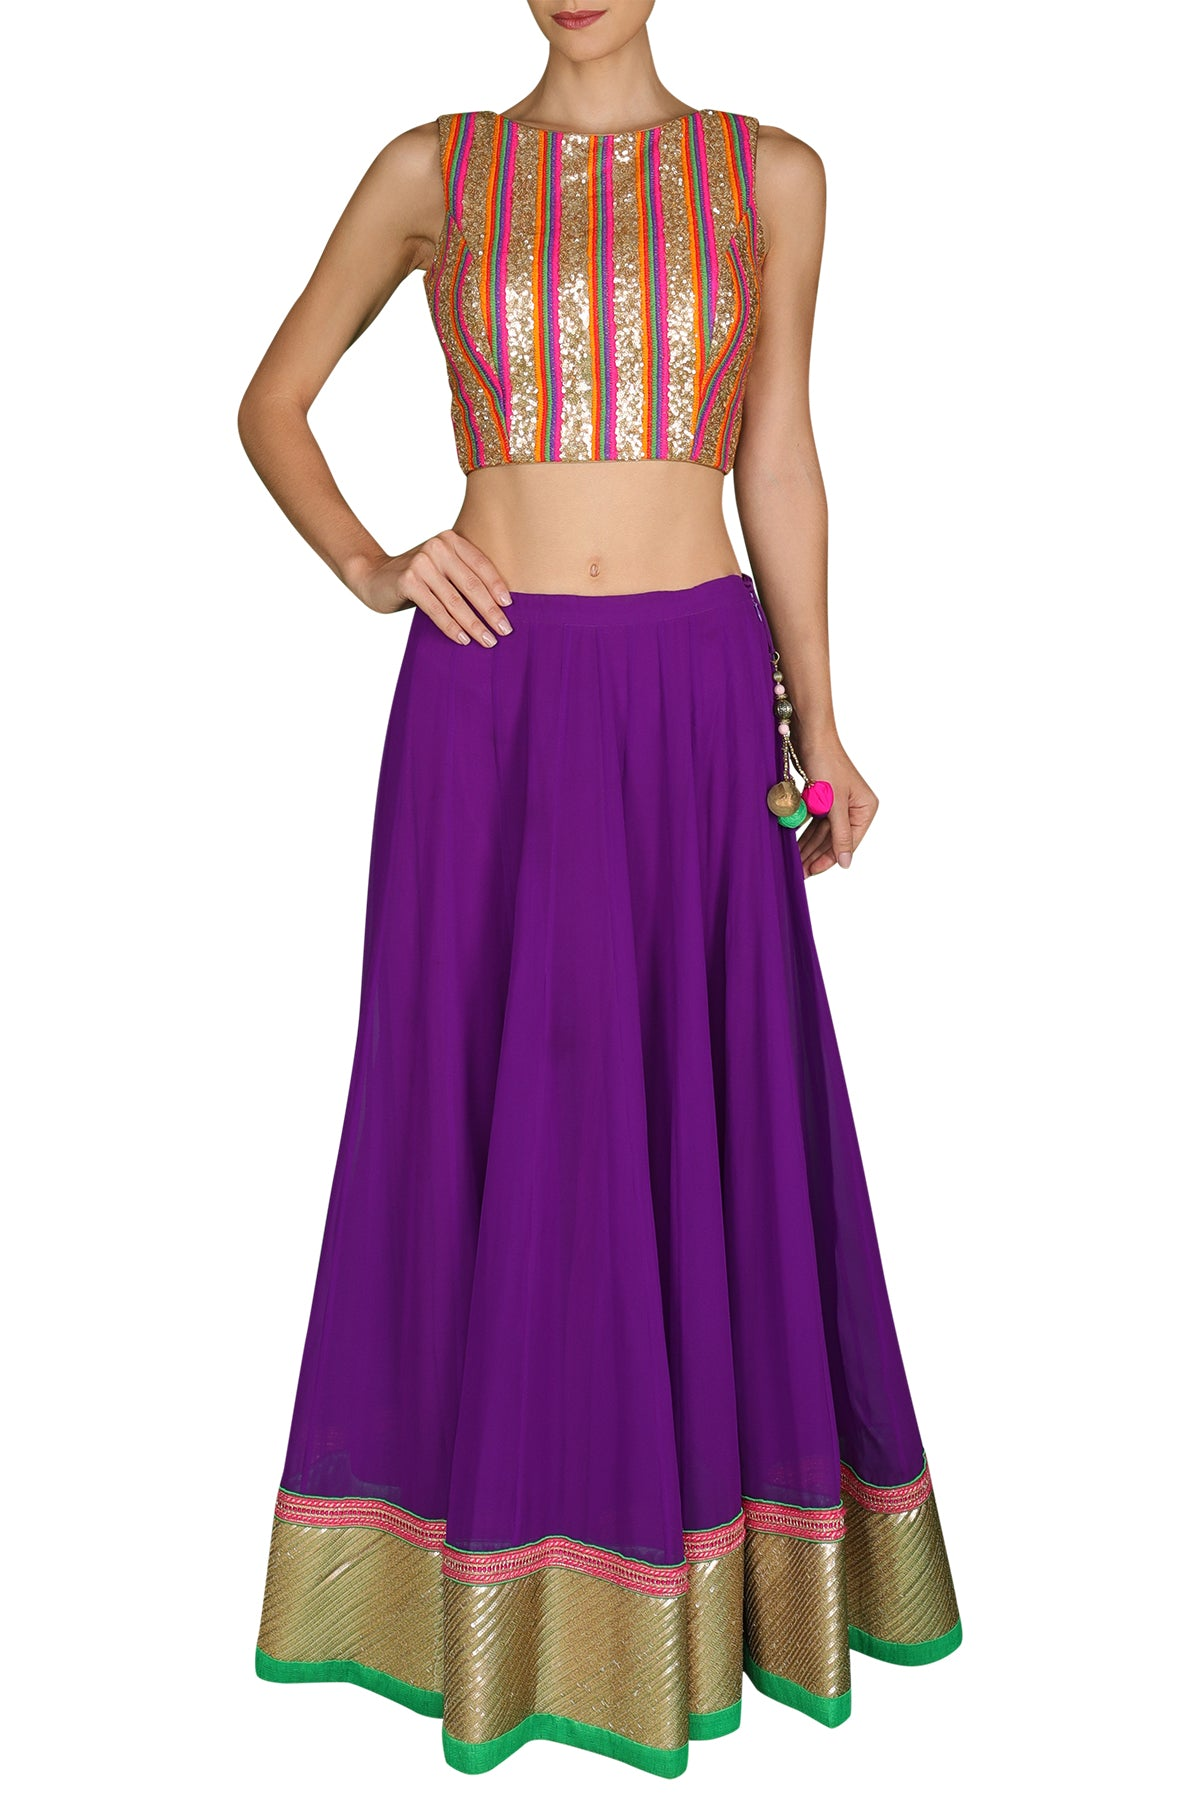 Multi-Colored Blouse with Purple Lehenga and Dupatta